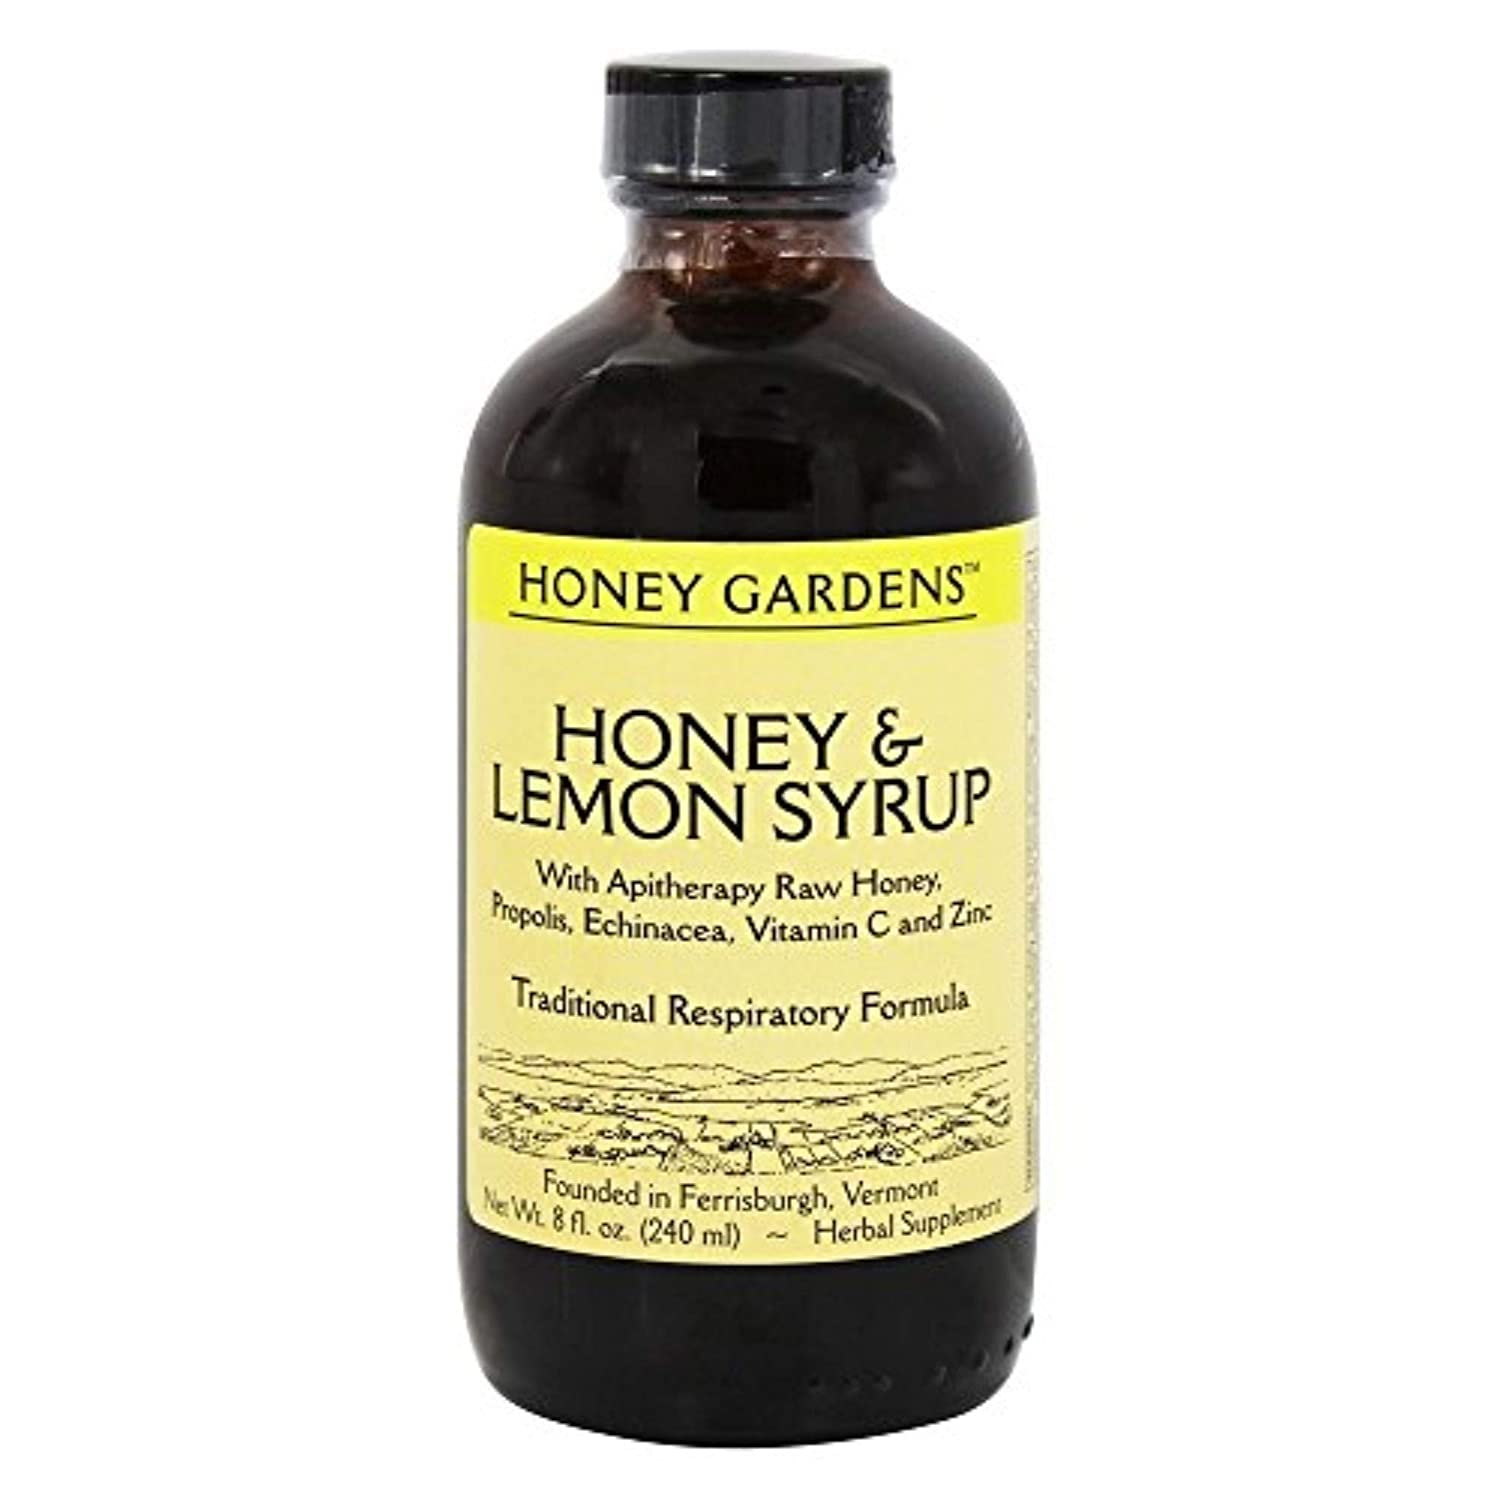 Honey Gardens Syrup - Honey & Lemon, Syrup (Btl-Plastic) | 8oz